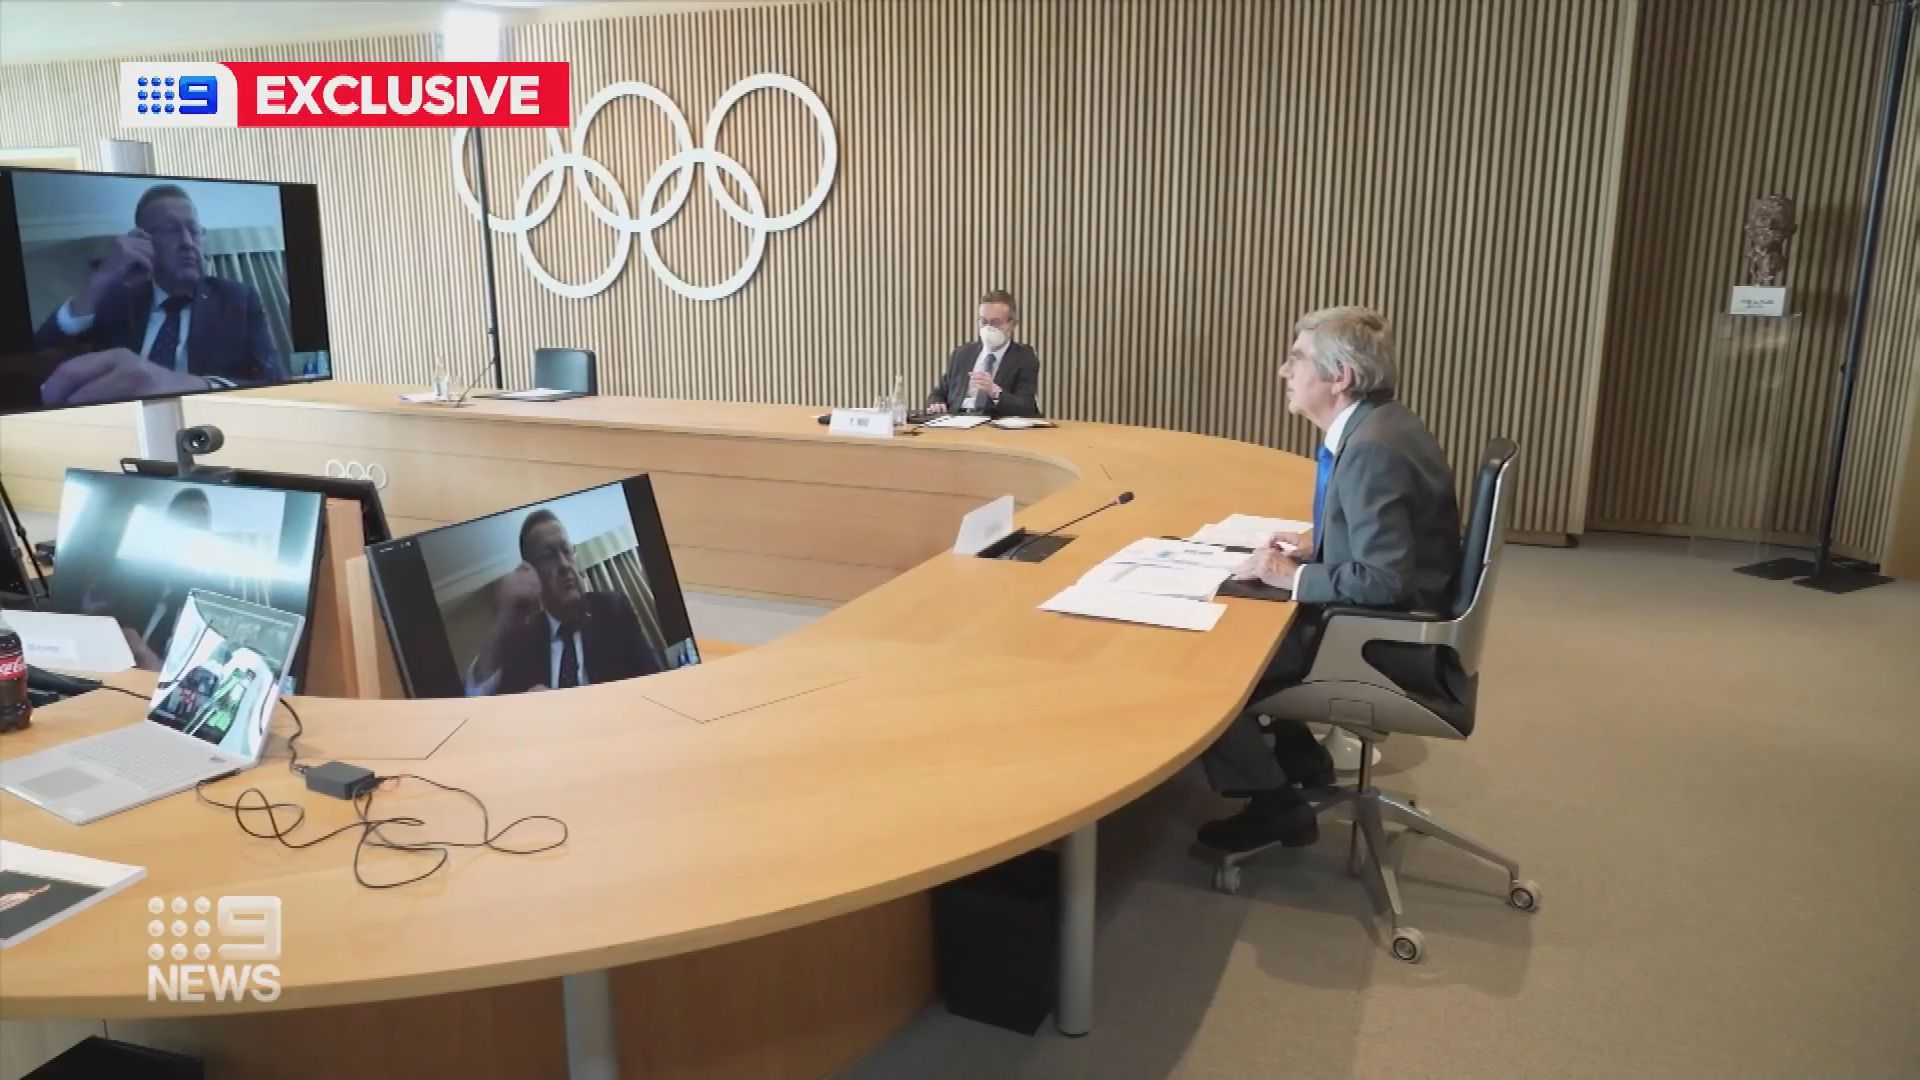 Tokyo Olympics: Yet another scandal over sexist comments